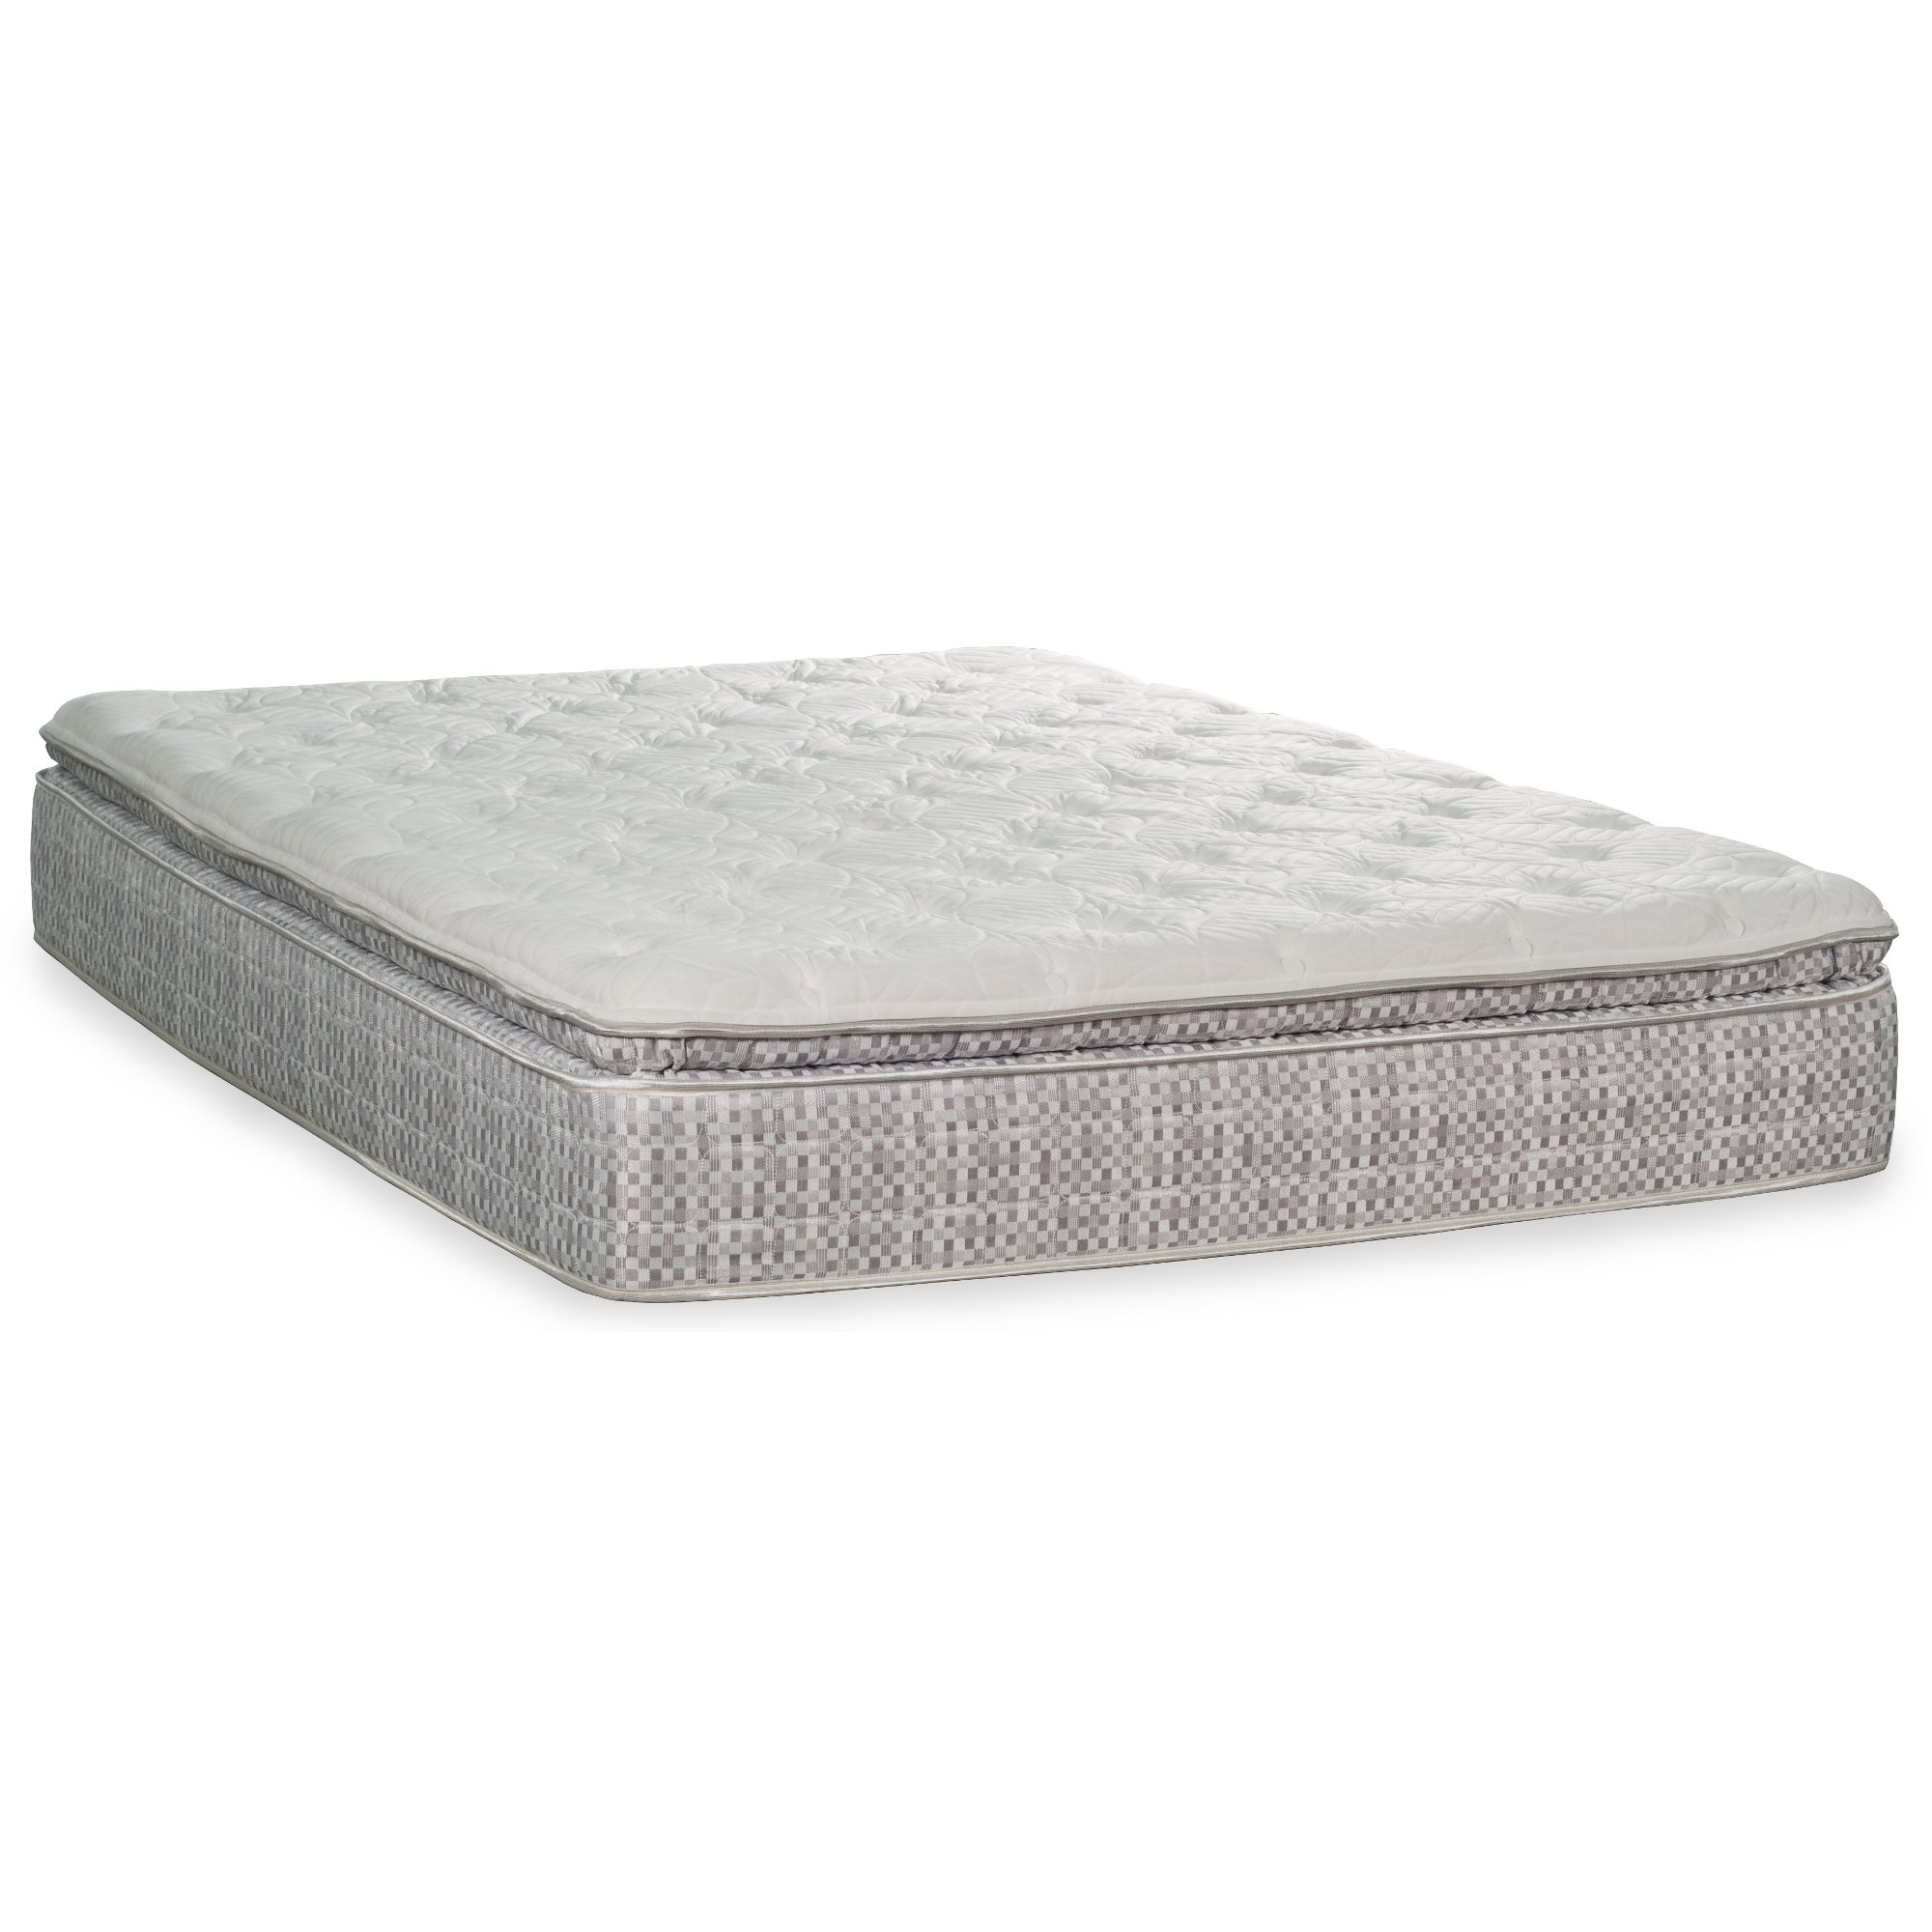 serendipity pillow toptwin luxurypt width kairos t height top threshold therapedic luxury twin mattress item trim products